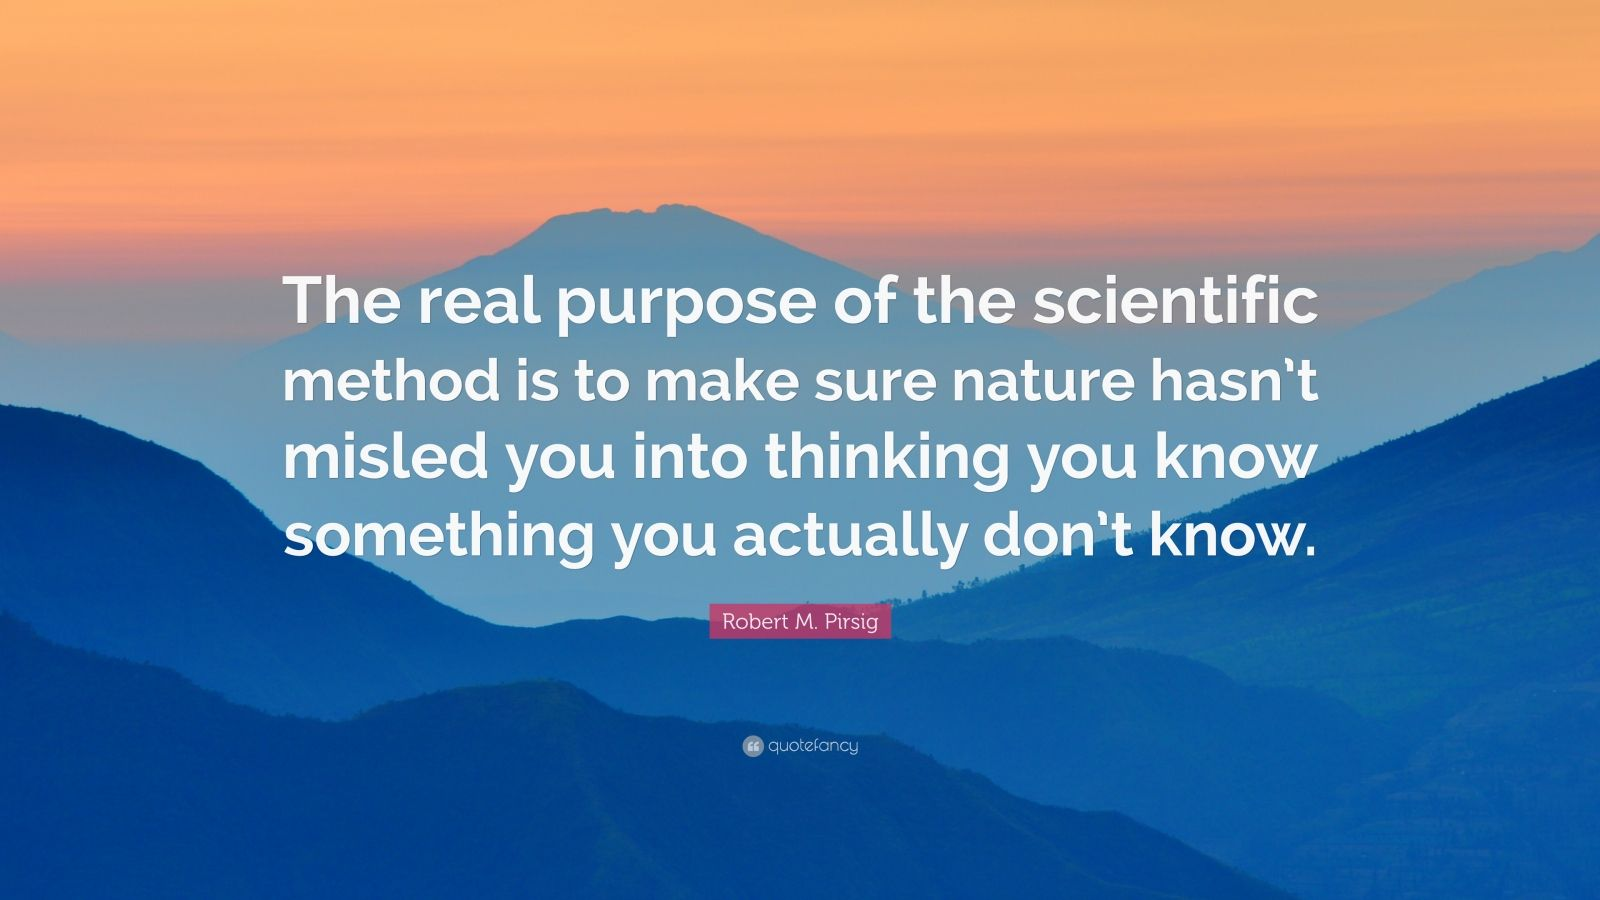 """Robert M. Pirsig Quote: """"The real purpose of the scientific method is to make sure nature hasn't misled you into thinking you know something you actually don't know."""""""